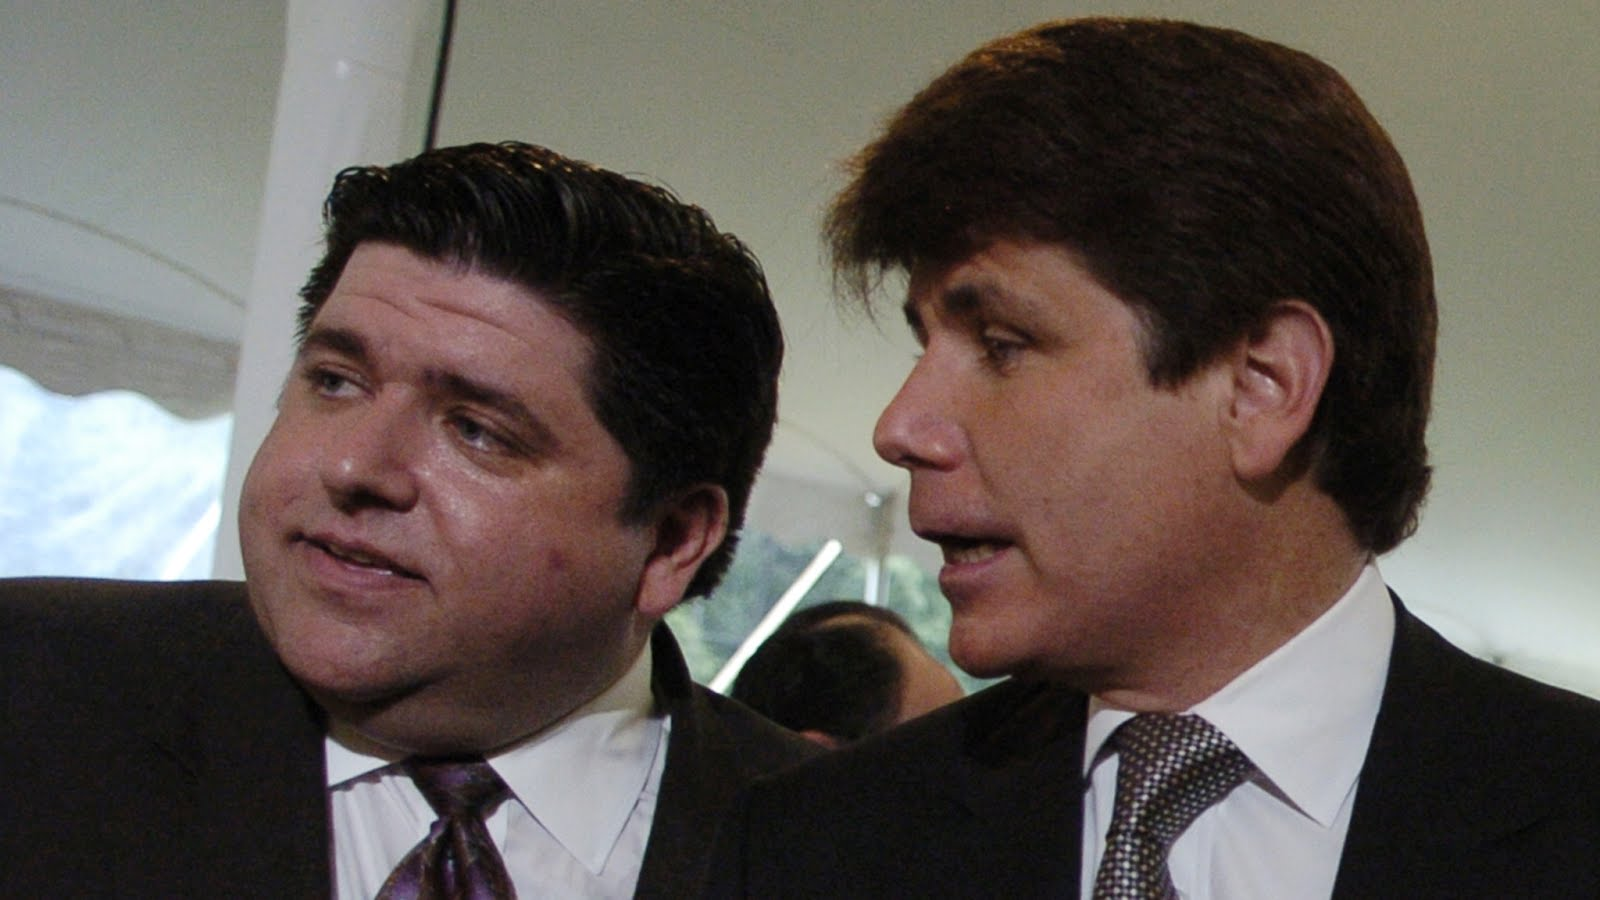 Jb Pritzker hoping to follow in Rod Blagojevich's footsteps